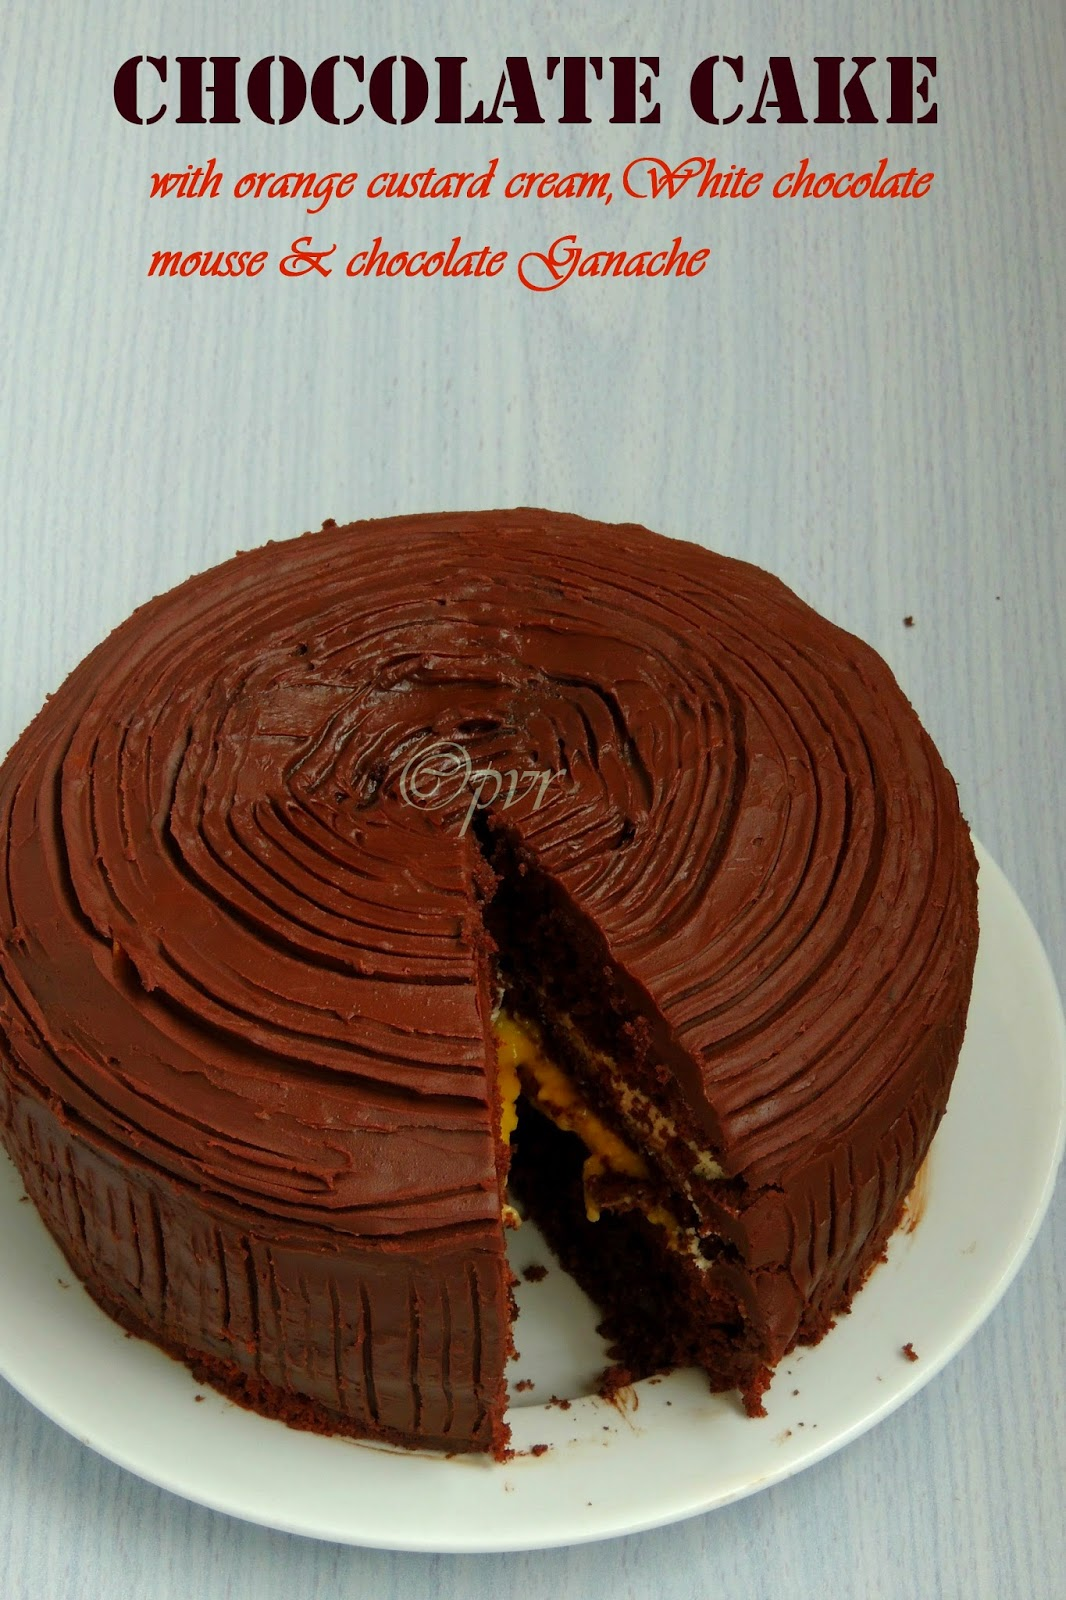 Chocolate Cake with Eggless Orange Custard Cream, Eggless White Chocolate Mousse and Chocolate Ganache, Low fat cake with eggless orange mousse